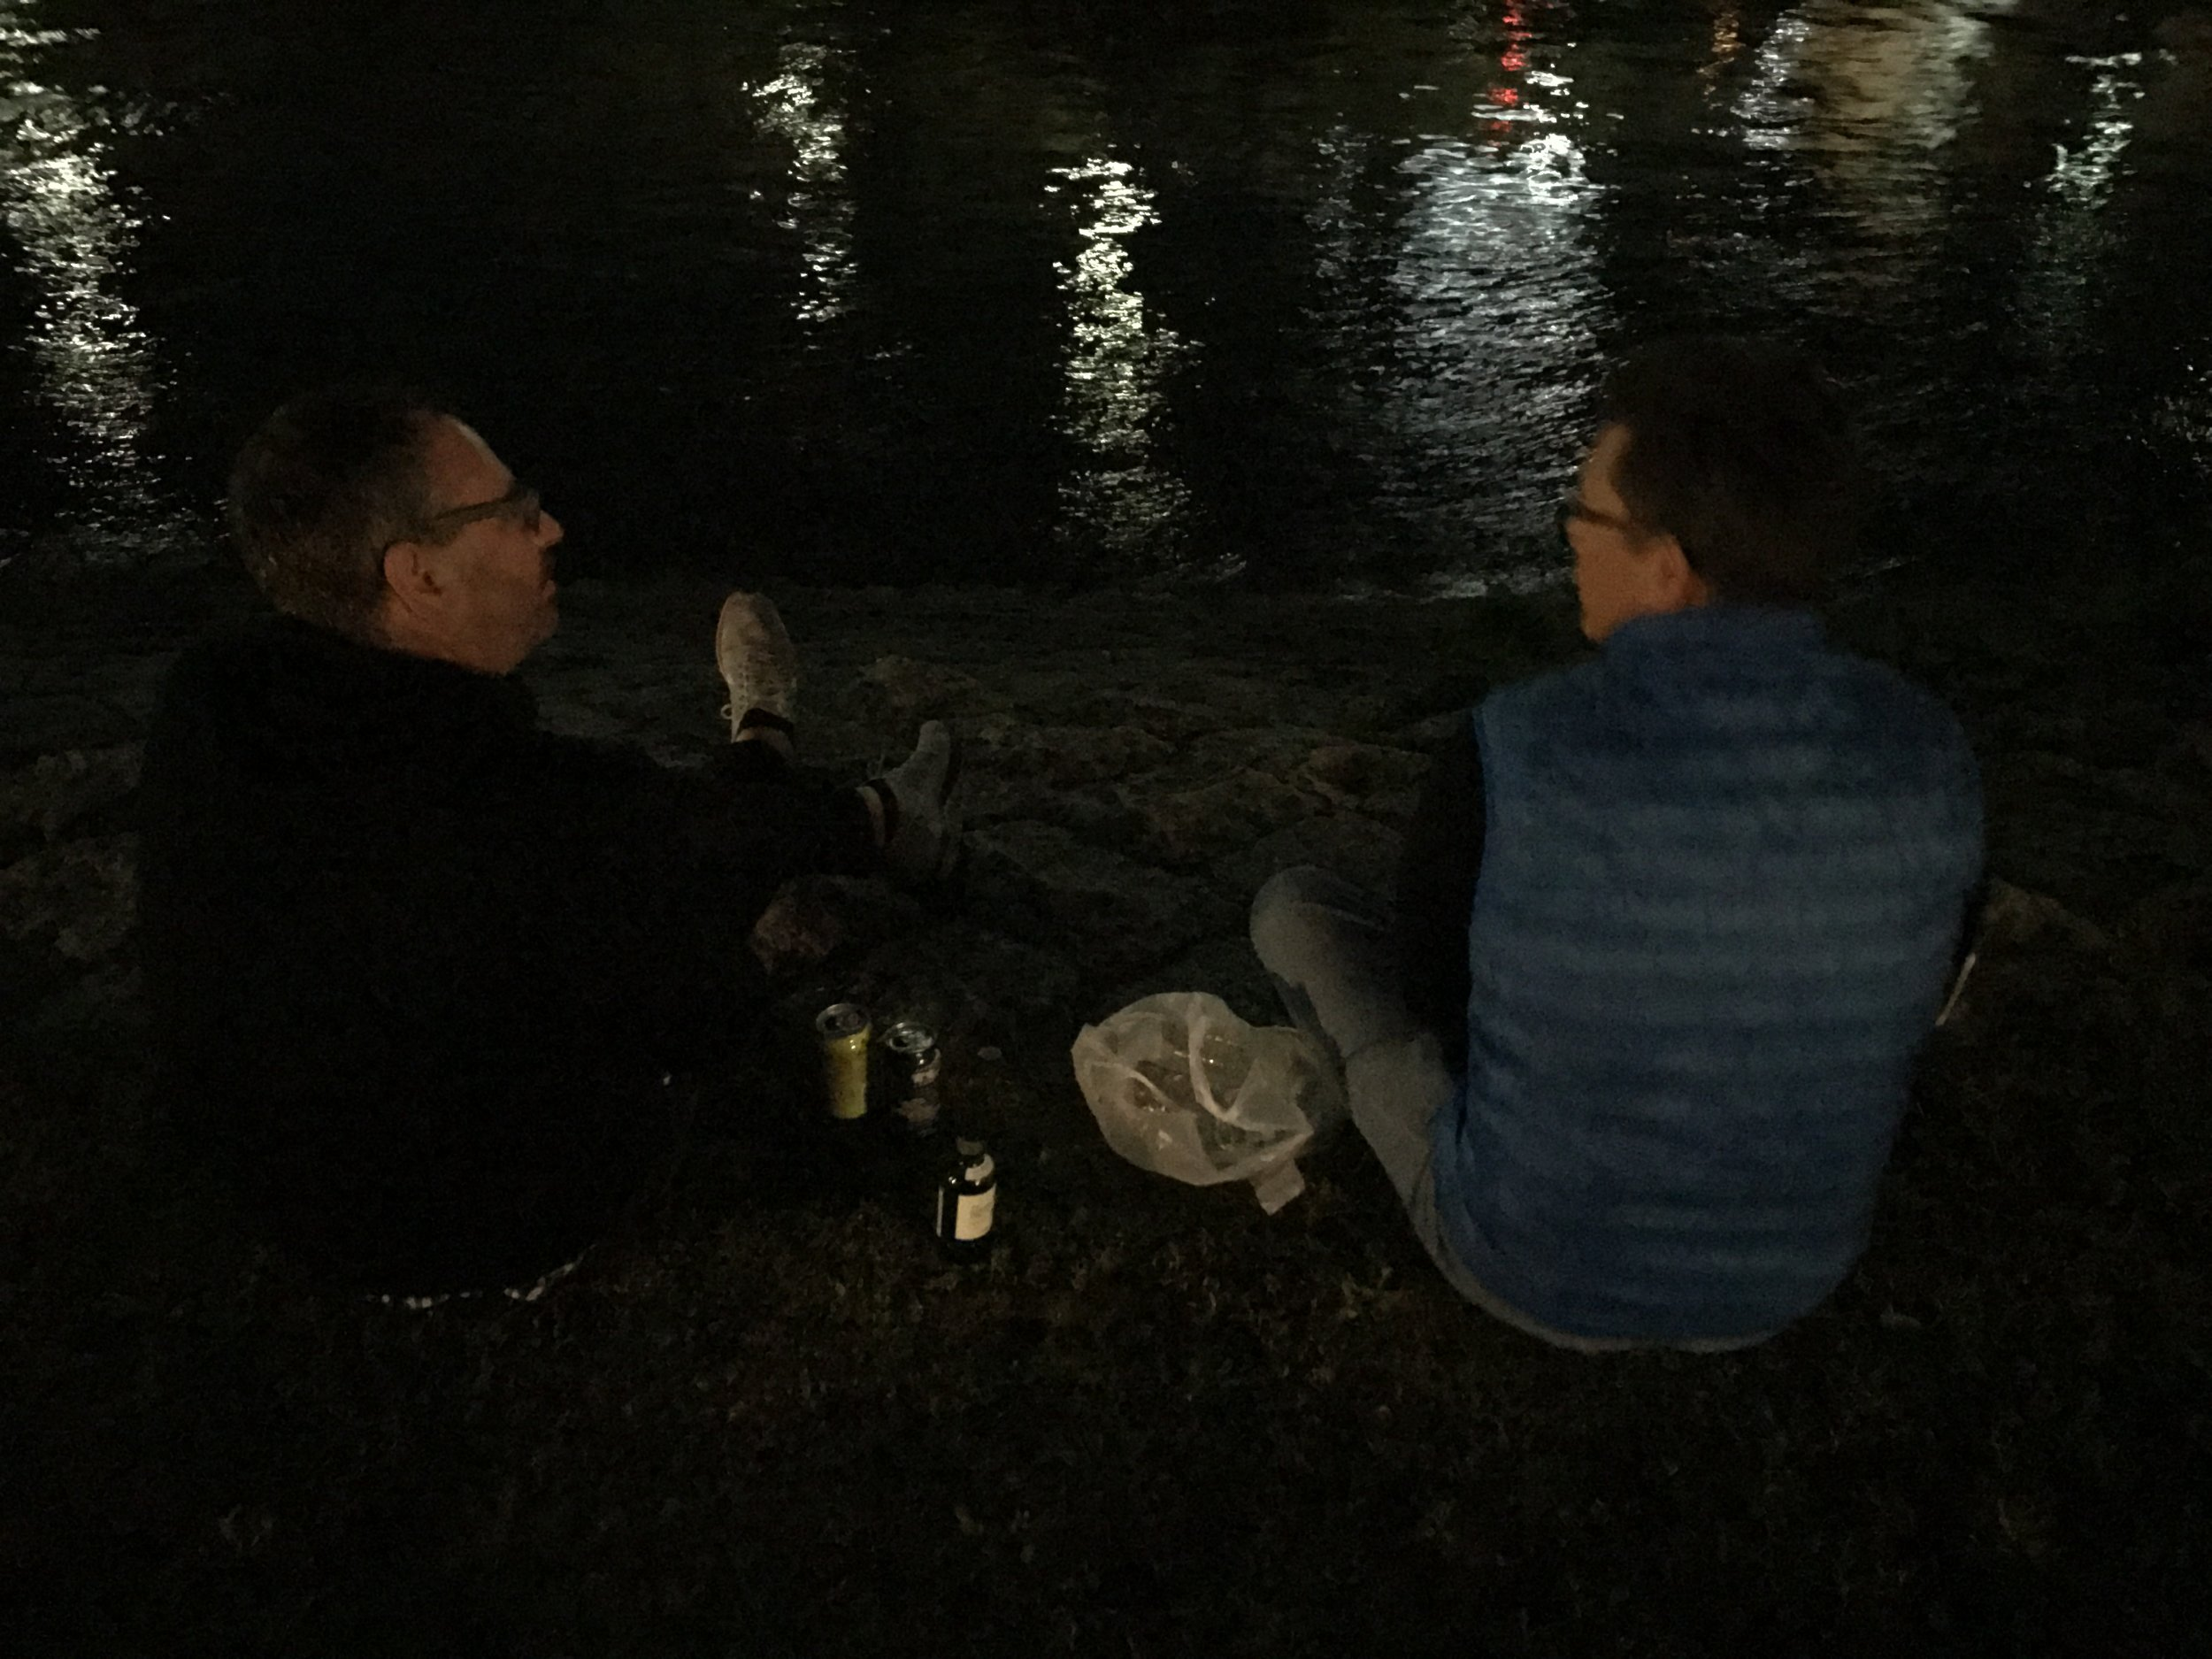 later that evening ... dave shows us what the natives do at night. cuddle up along the river, under the stars, and chat with local beverages in hand.